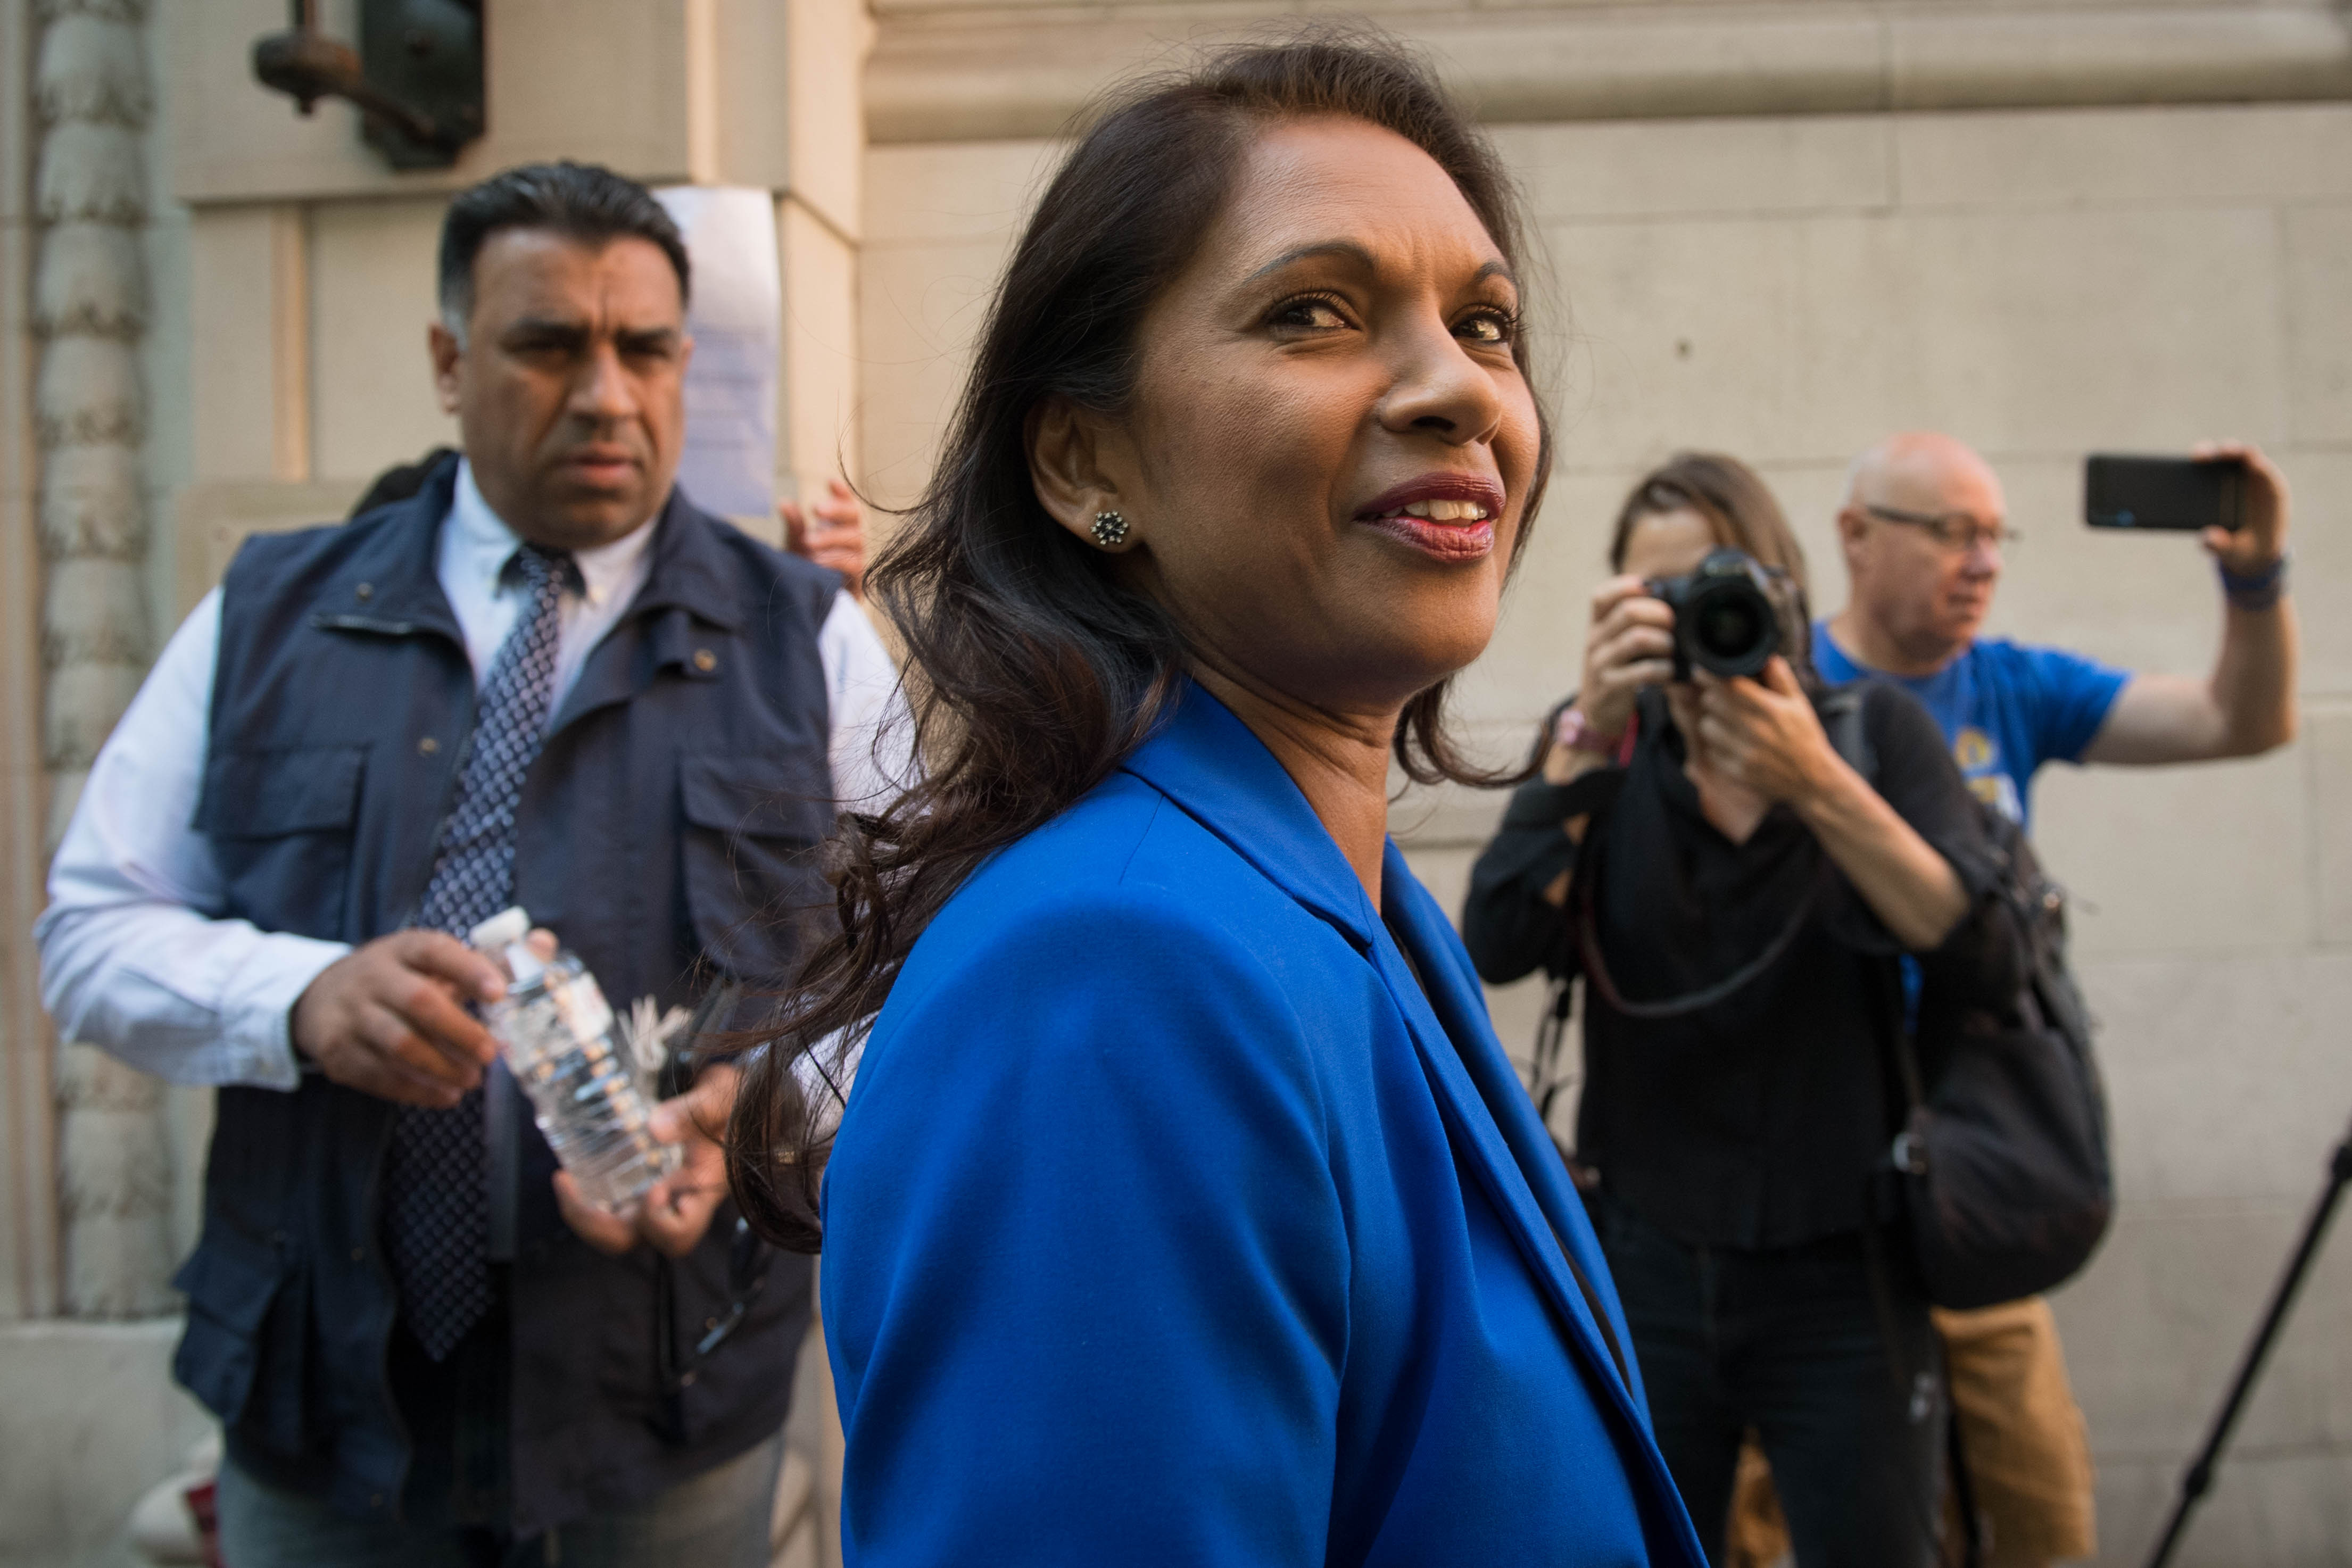 Anti Brexit campaigner Gina Miller leaves Millbank in Westminster, London.